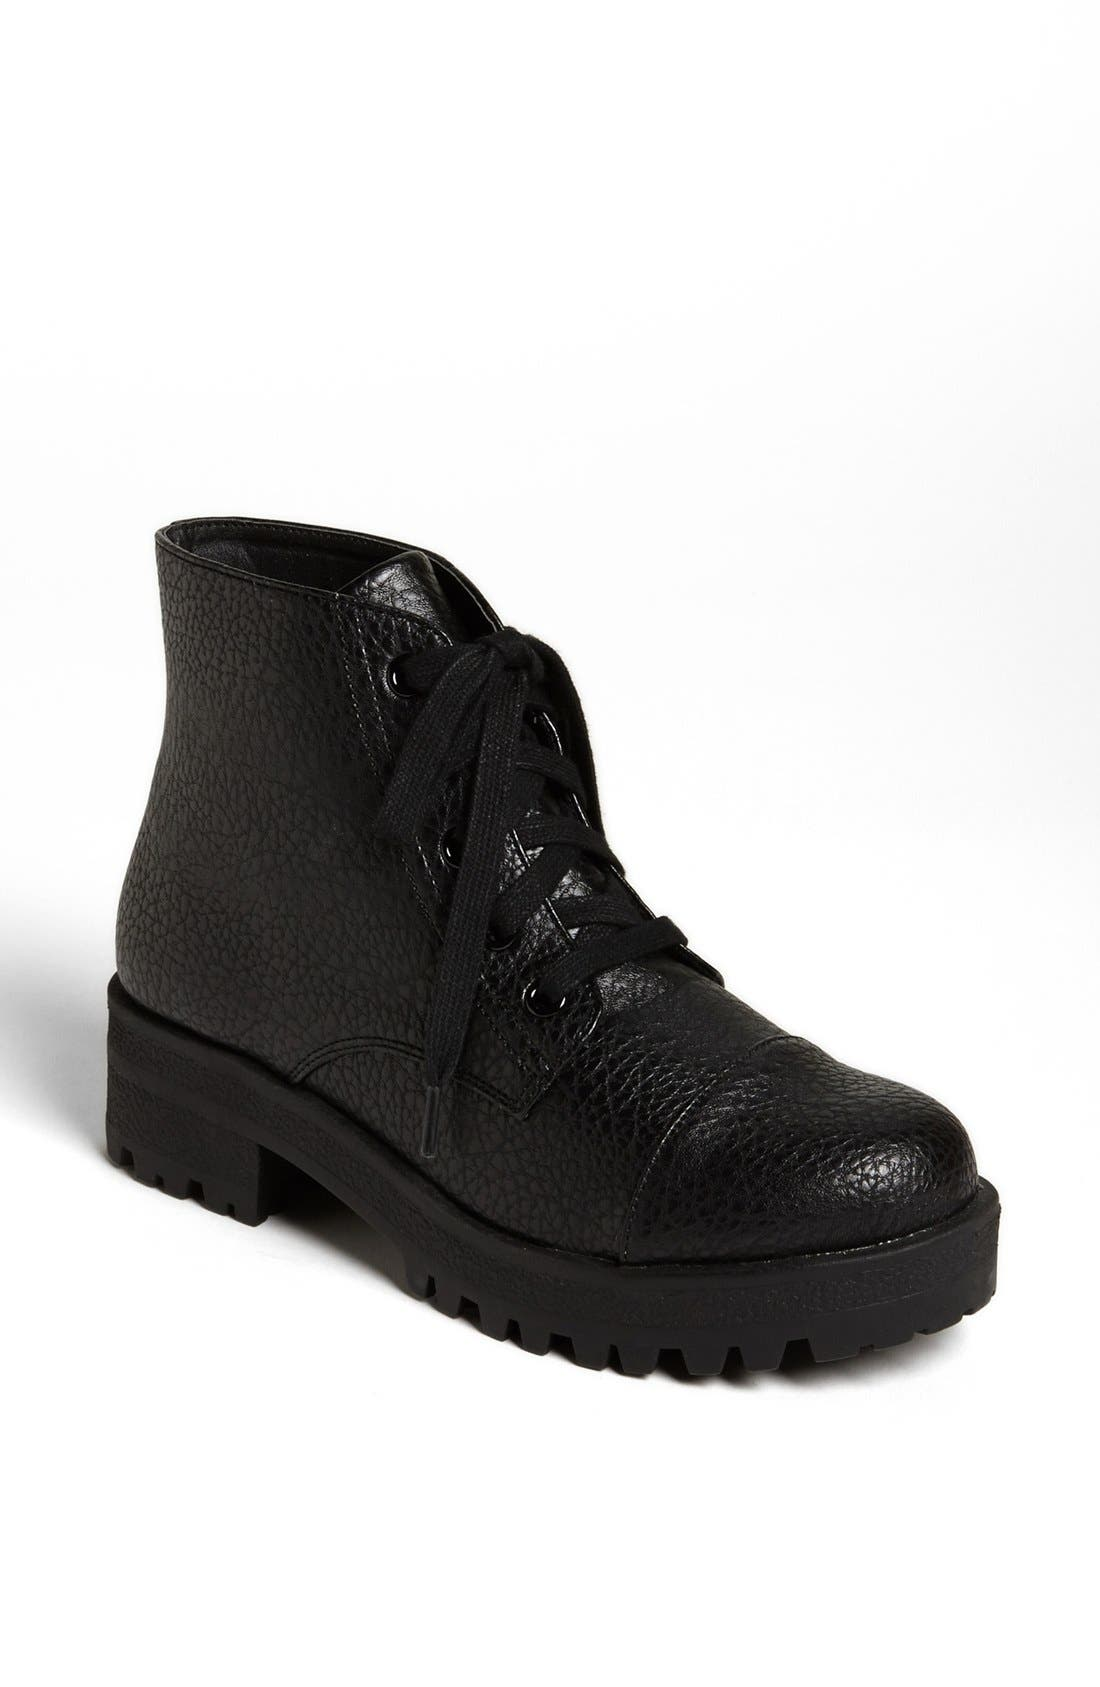 Alternate Image 1 Selected - Topshop 'Maxwell' Heavy Sole Boot